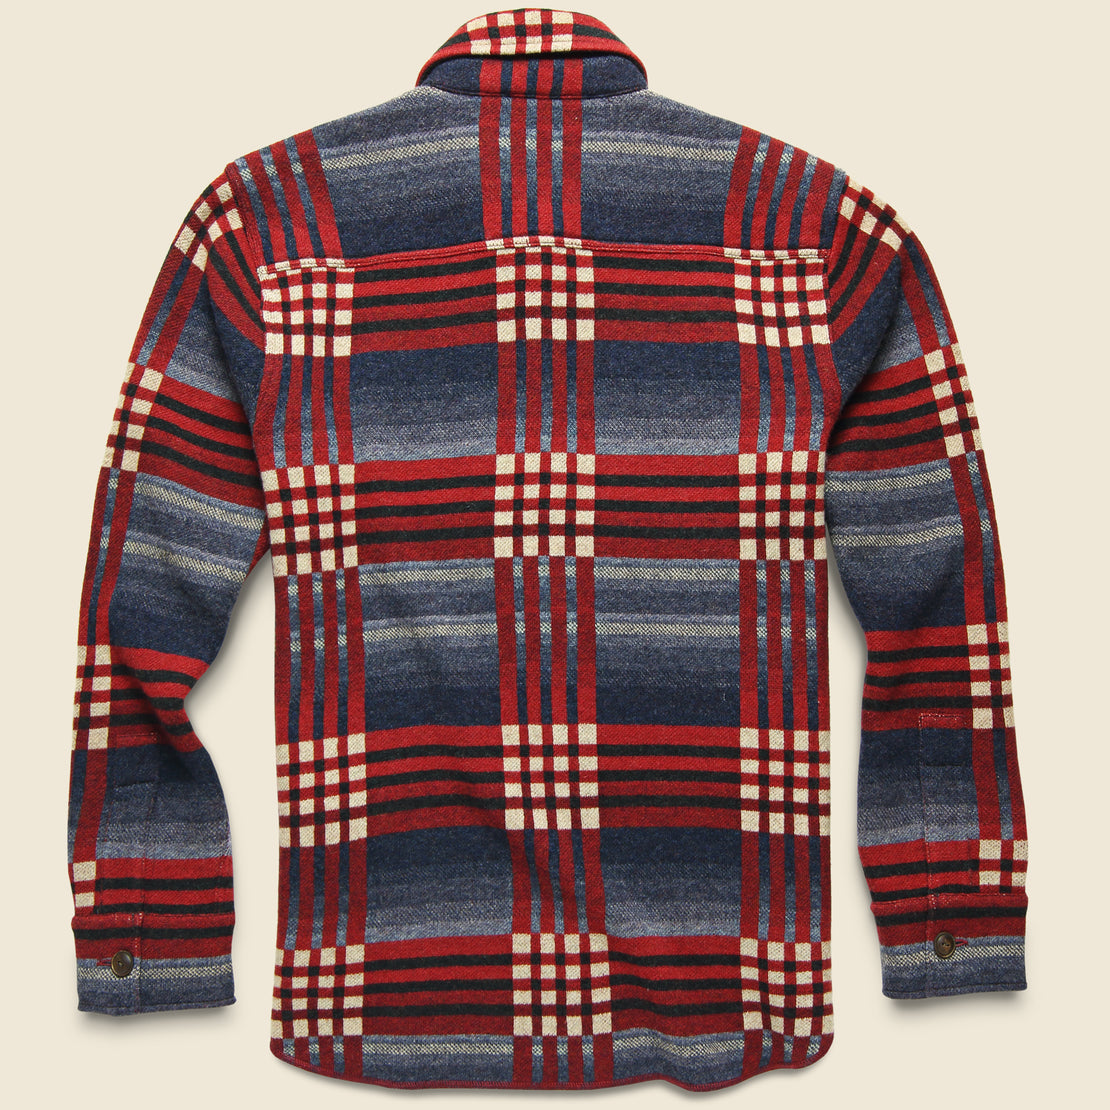 Birdseye Jacquard Workshirt - Red/Blue